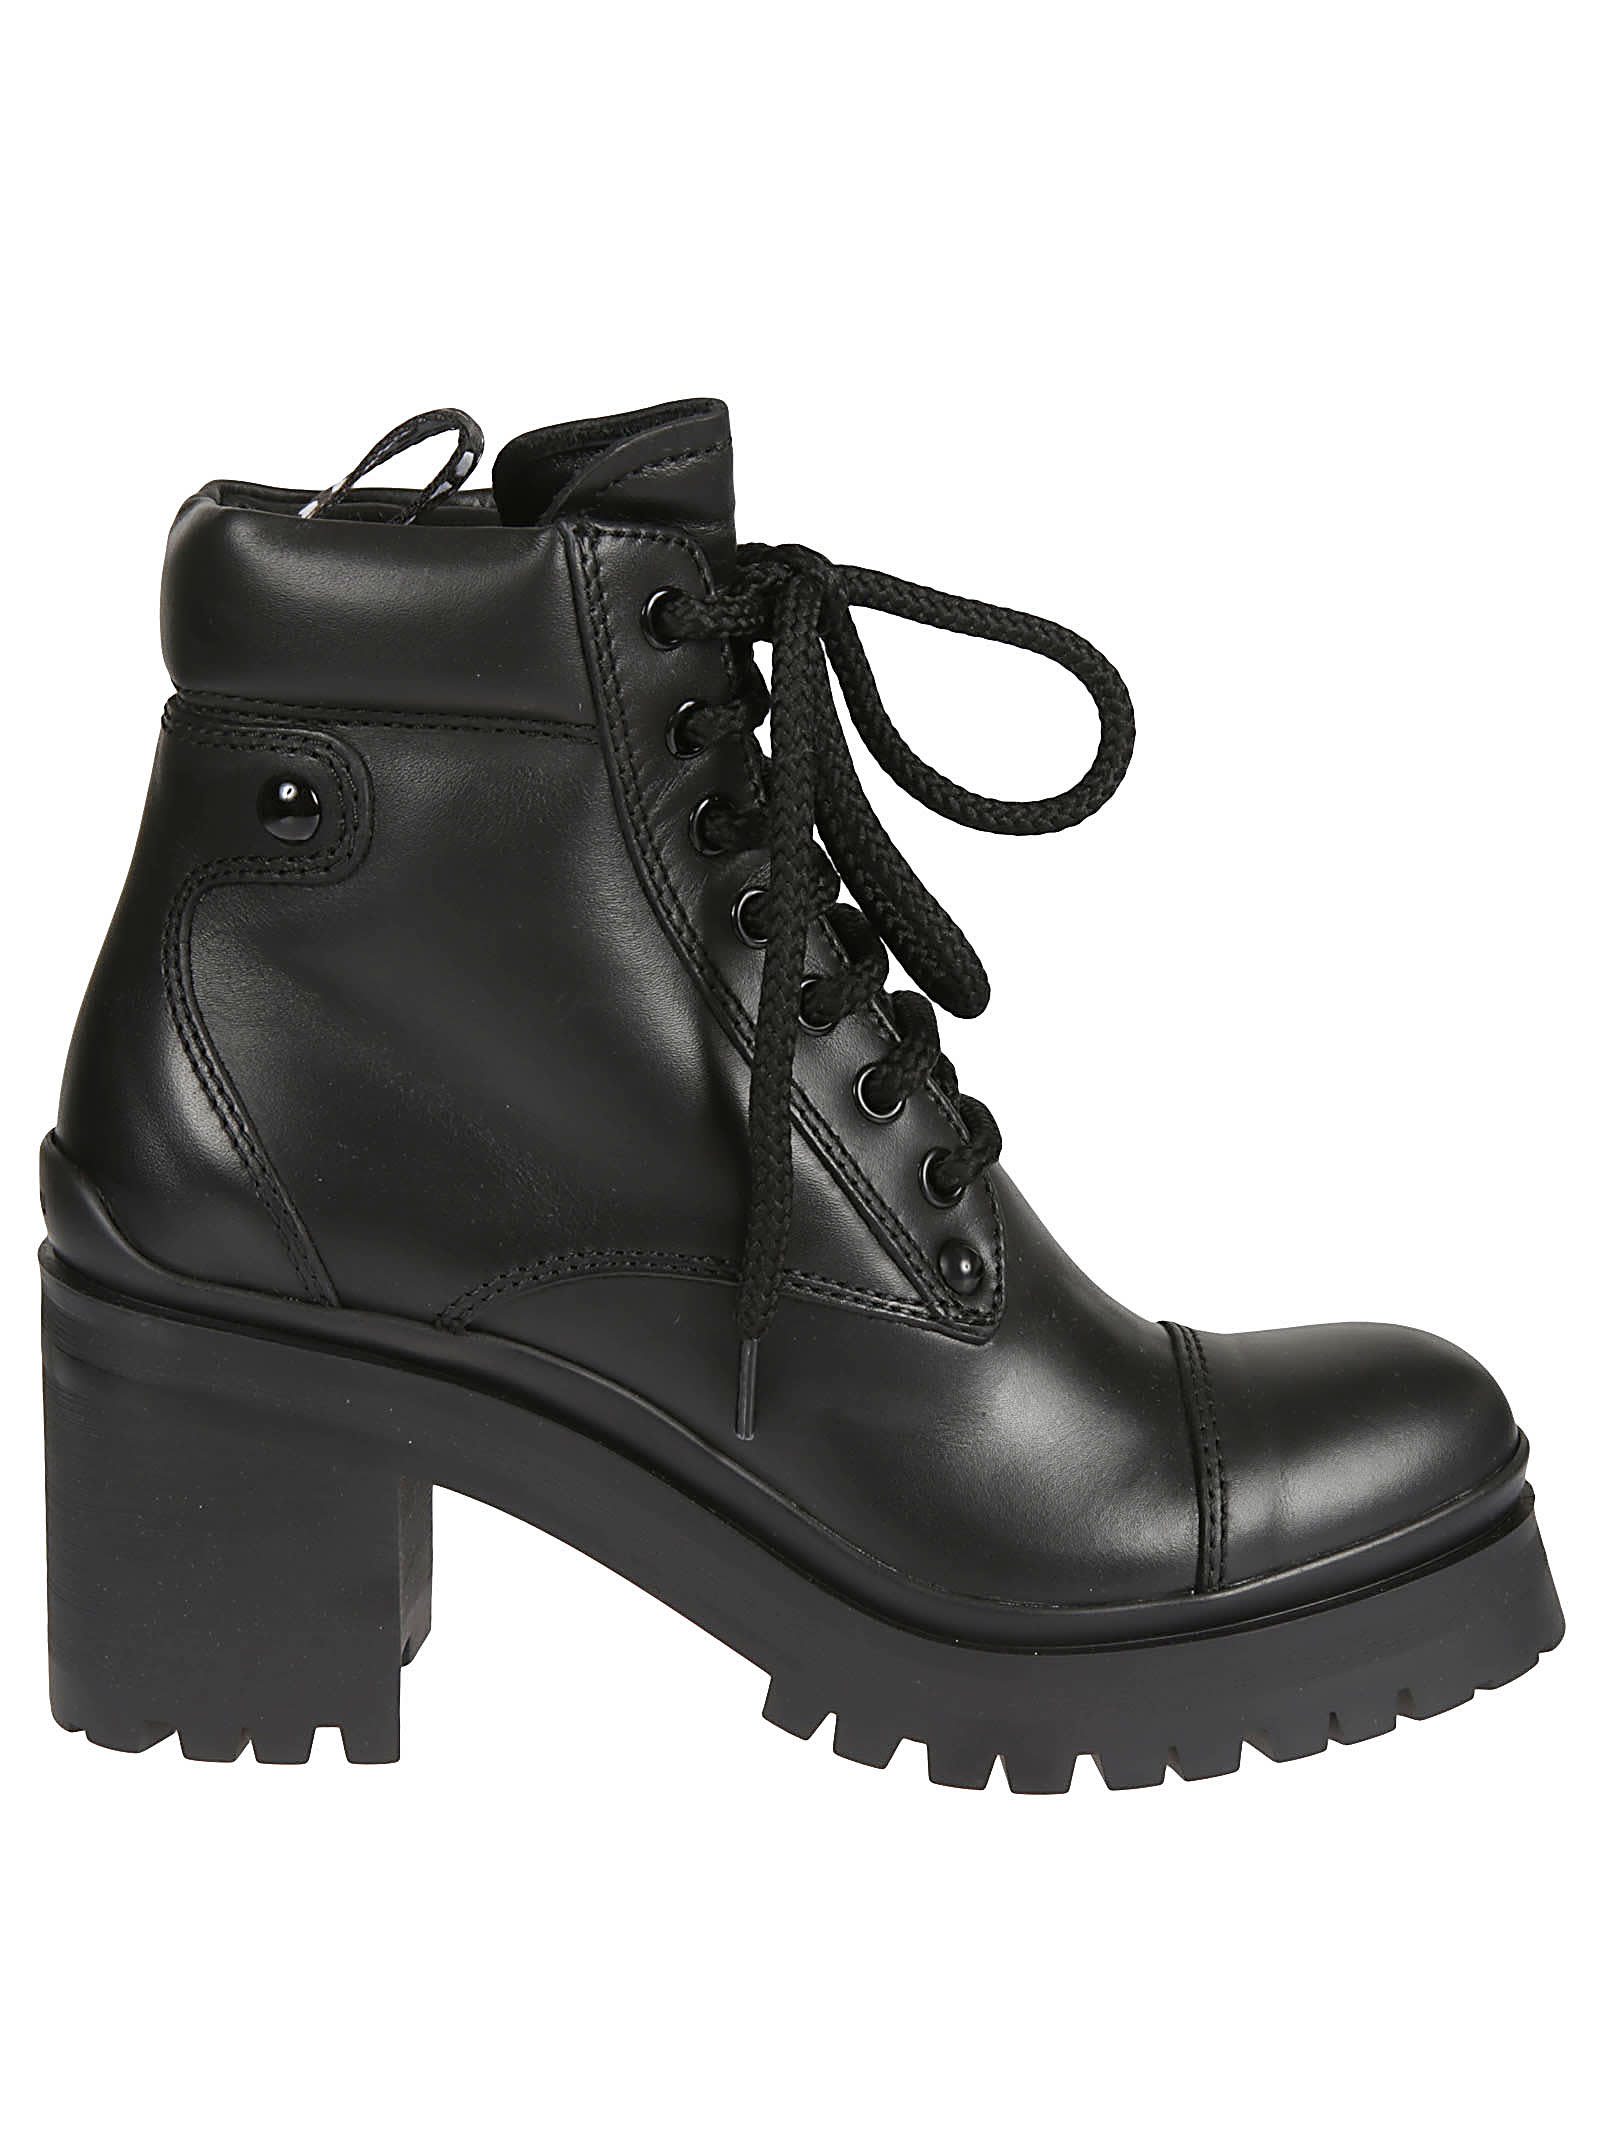 Miu Miu BLOCK HEEL LACE-UP BOOTS